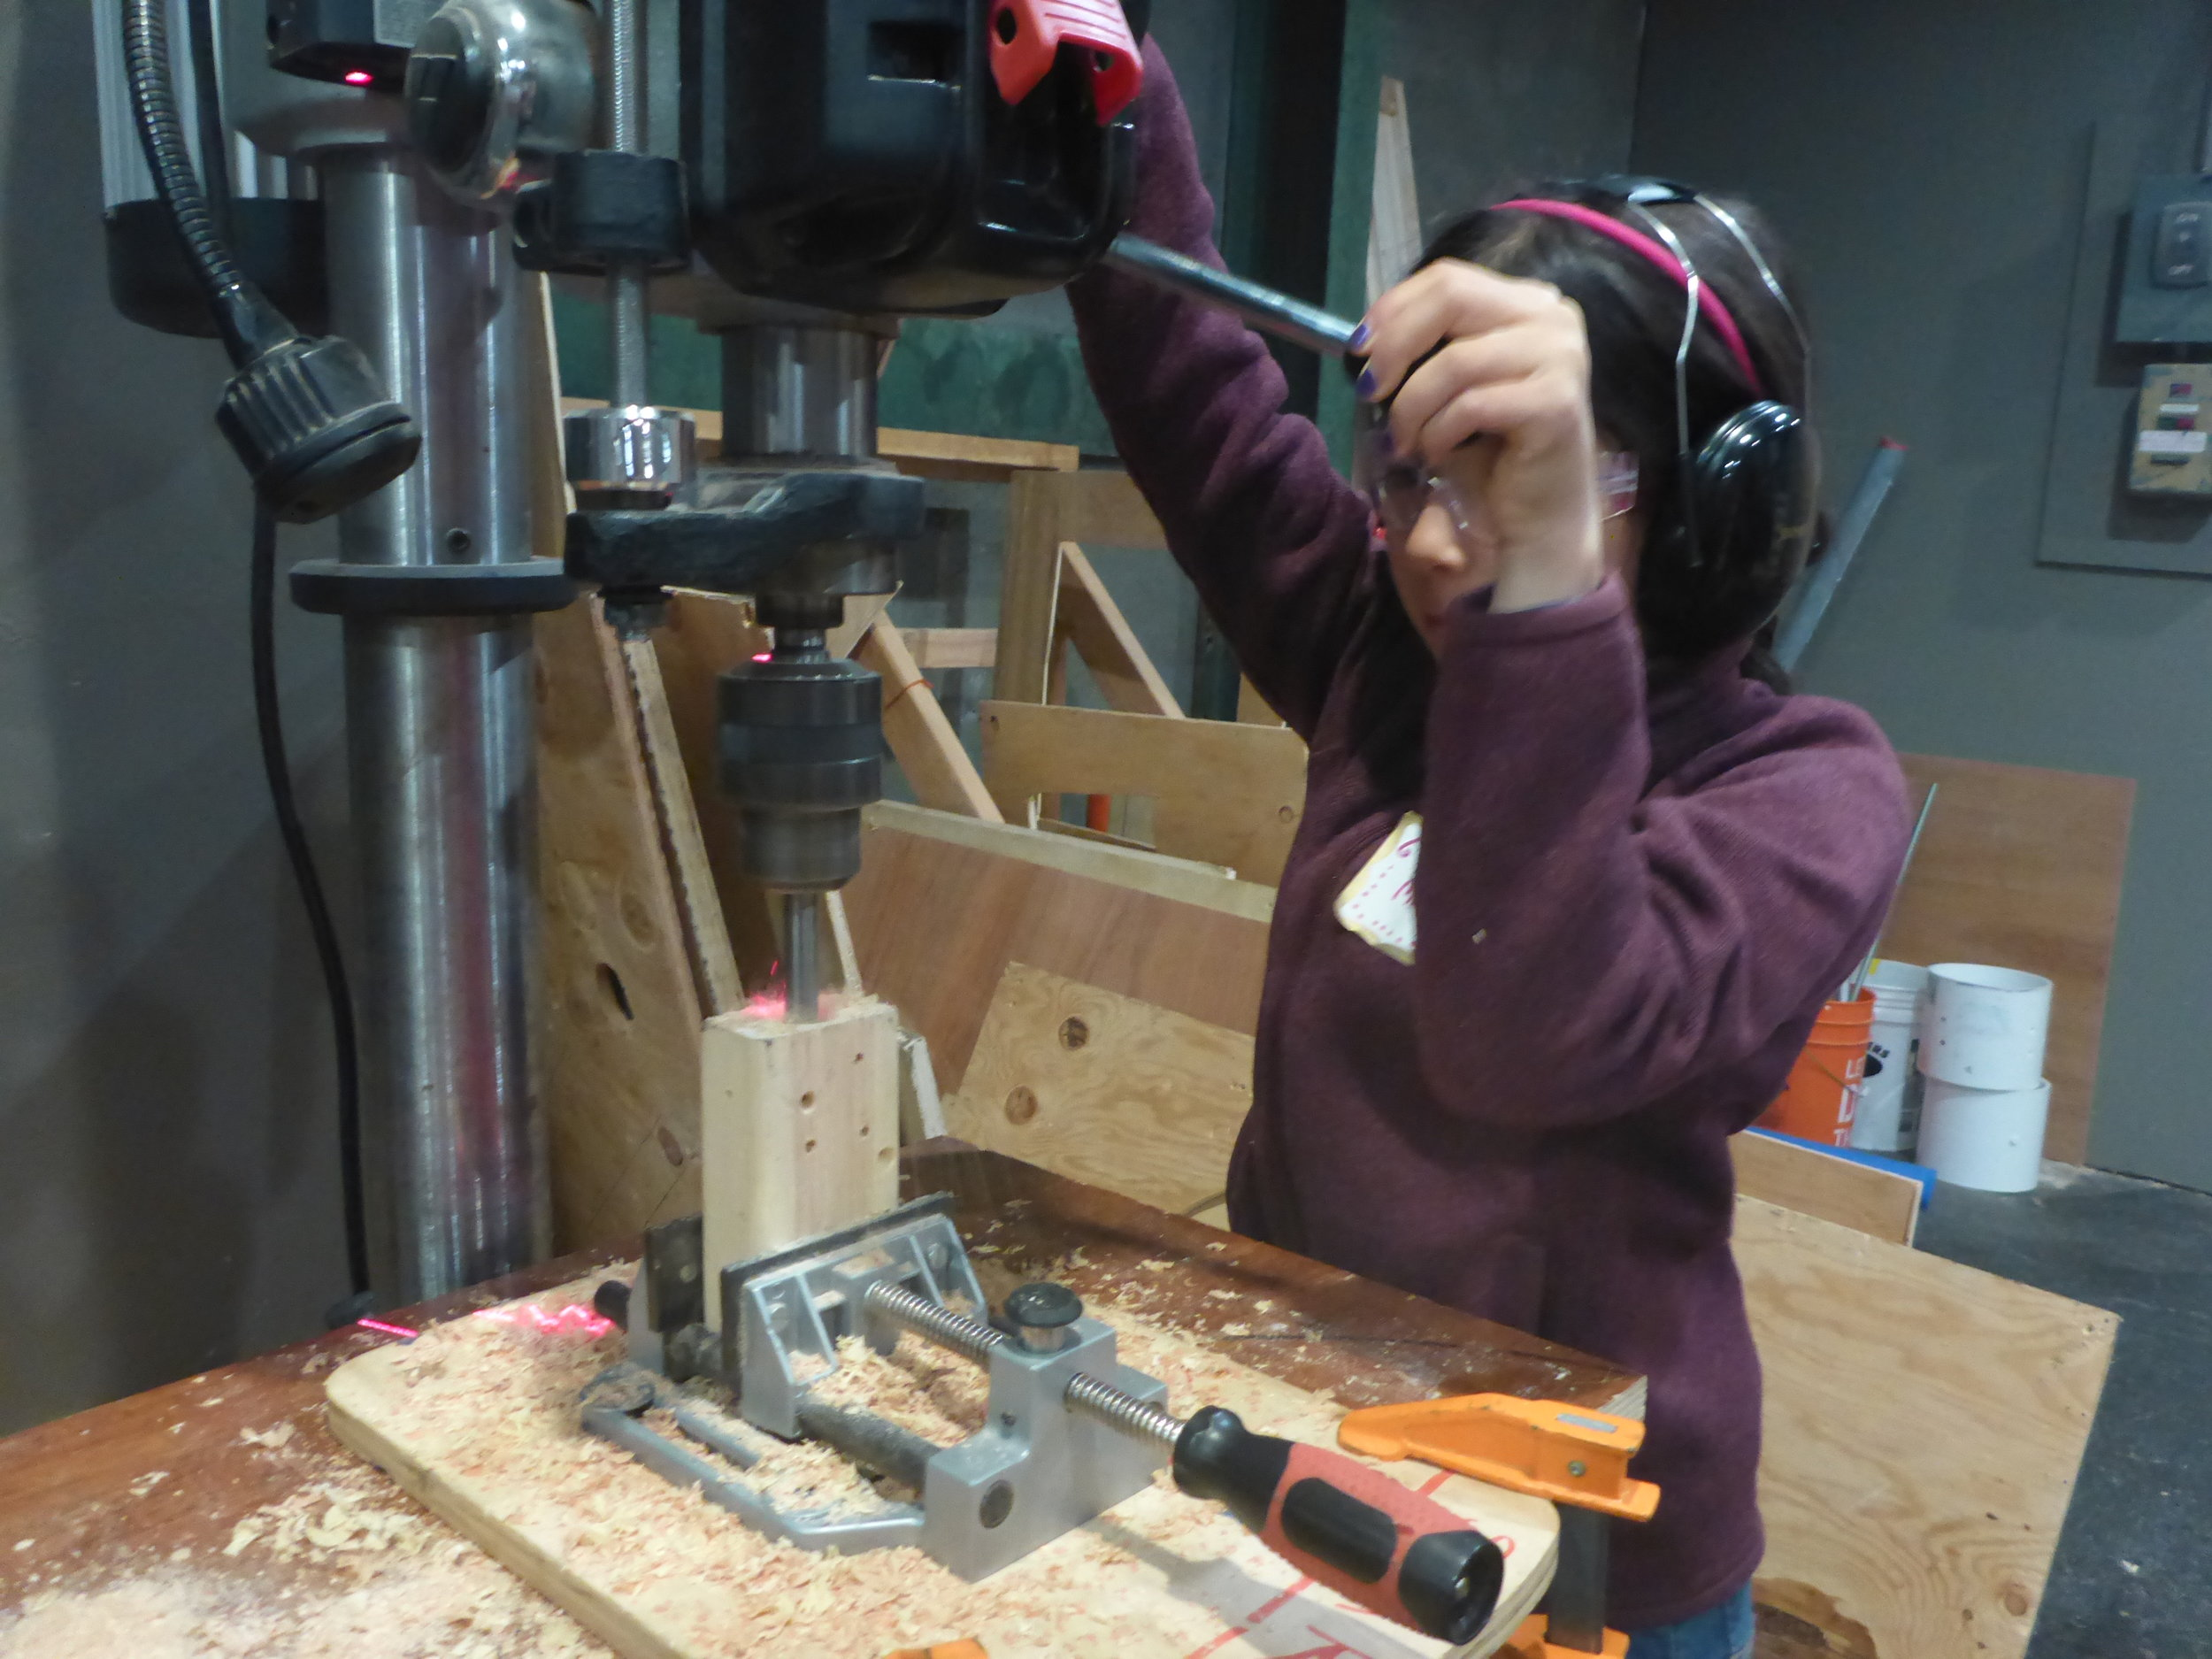 Many tinkerers are learning to use the drill press which allows us to make extra big and deep holes to hold car axles, for example.